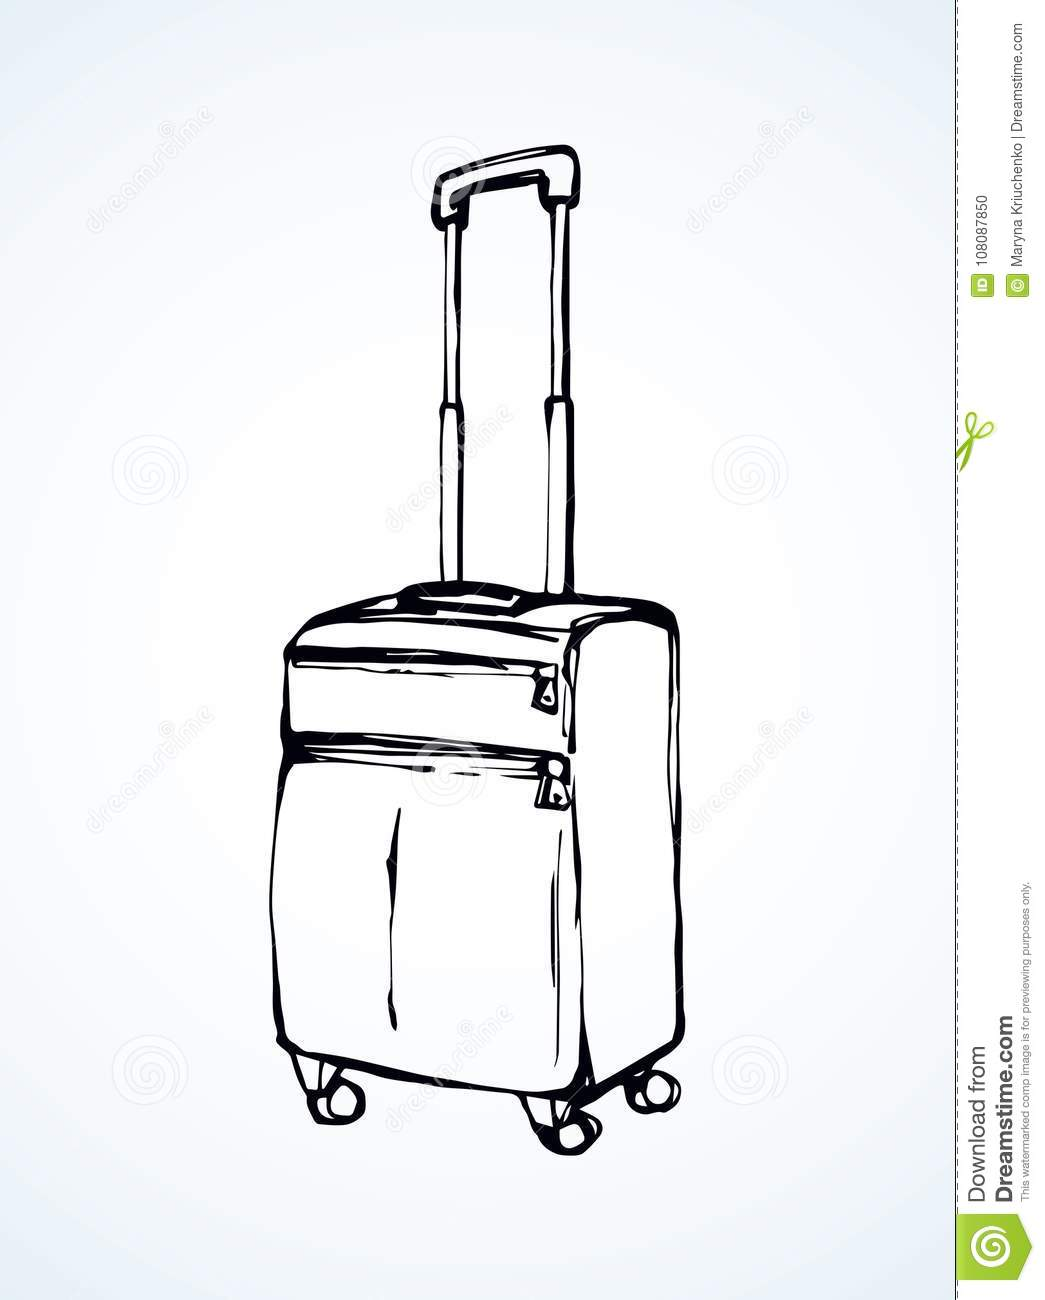 Suitcase. Vector drawing stock vector. Illustration of empty